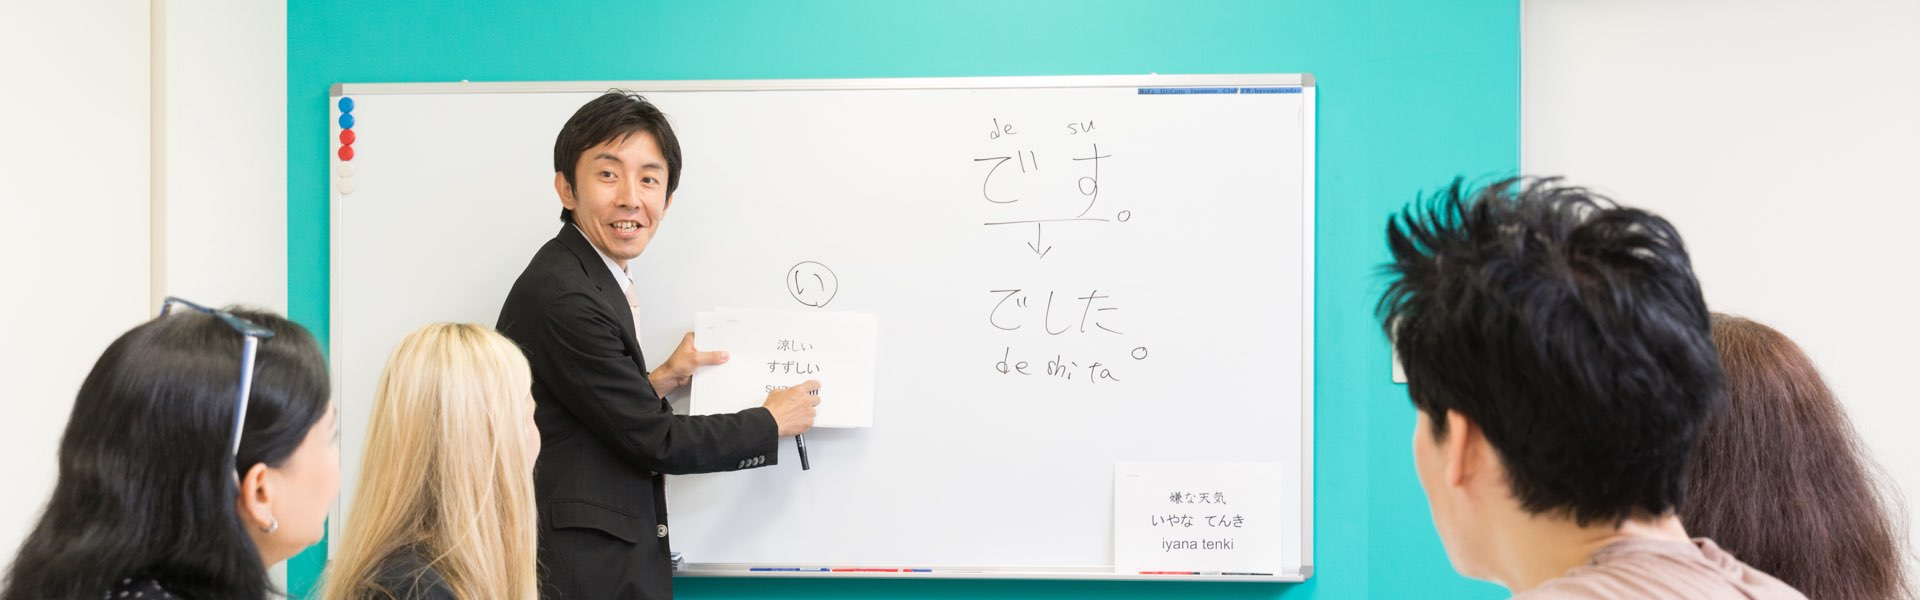 takuya-nagai-長井-卓也-senior-teacher-and-corporate-service-development-teaching-japanese-to-young-students